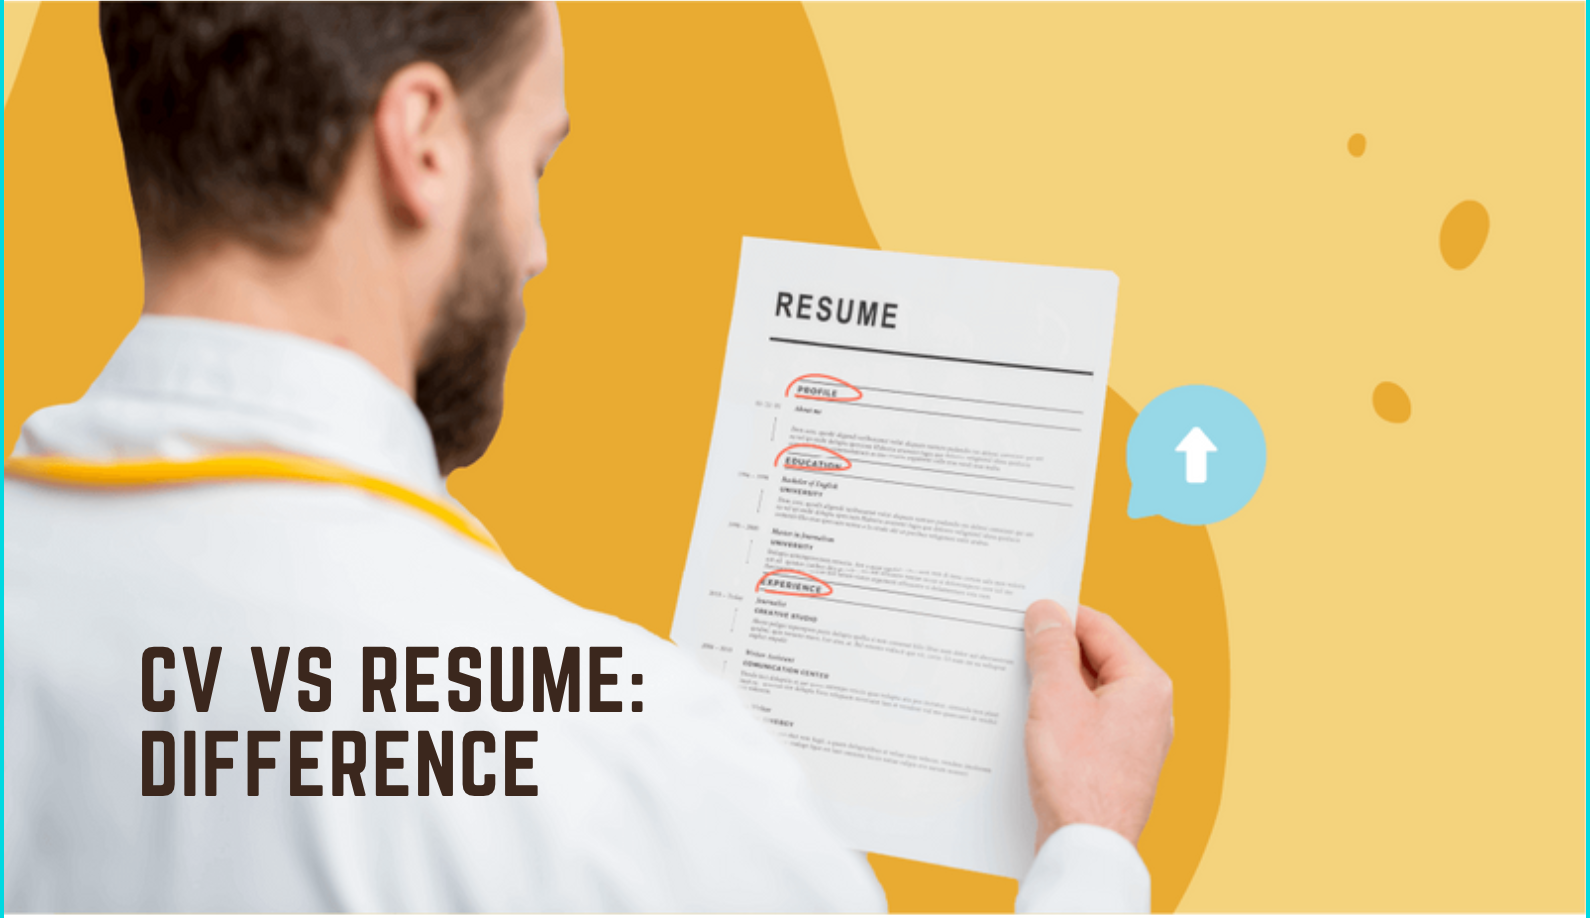 cv vs resume, what is the difference